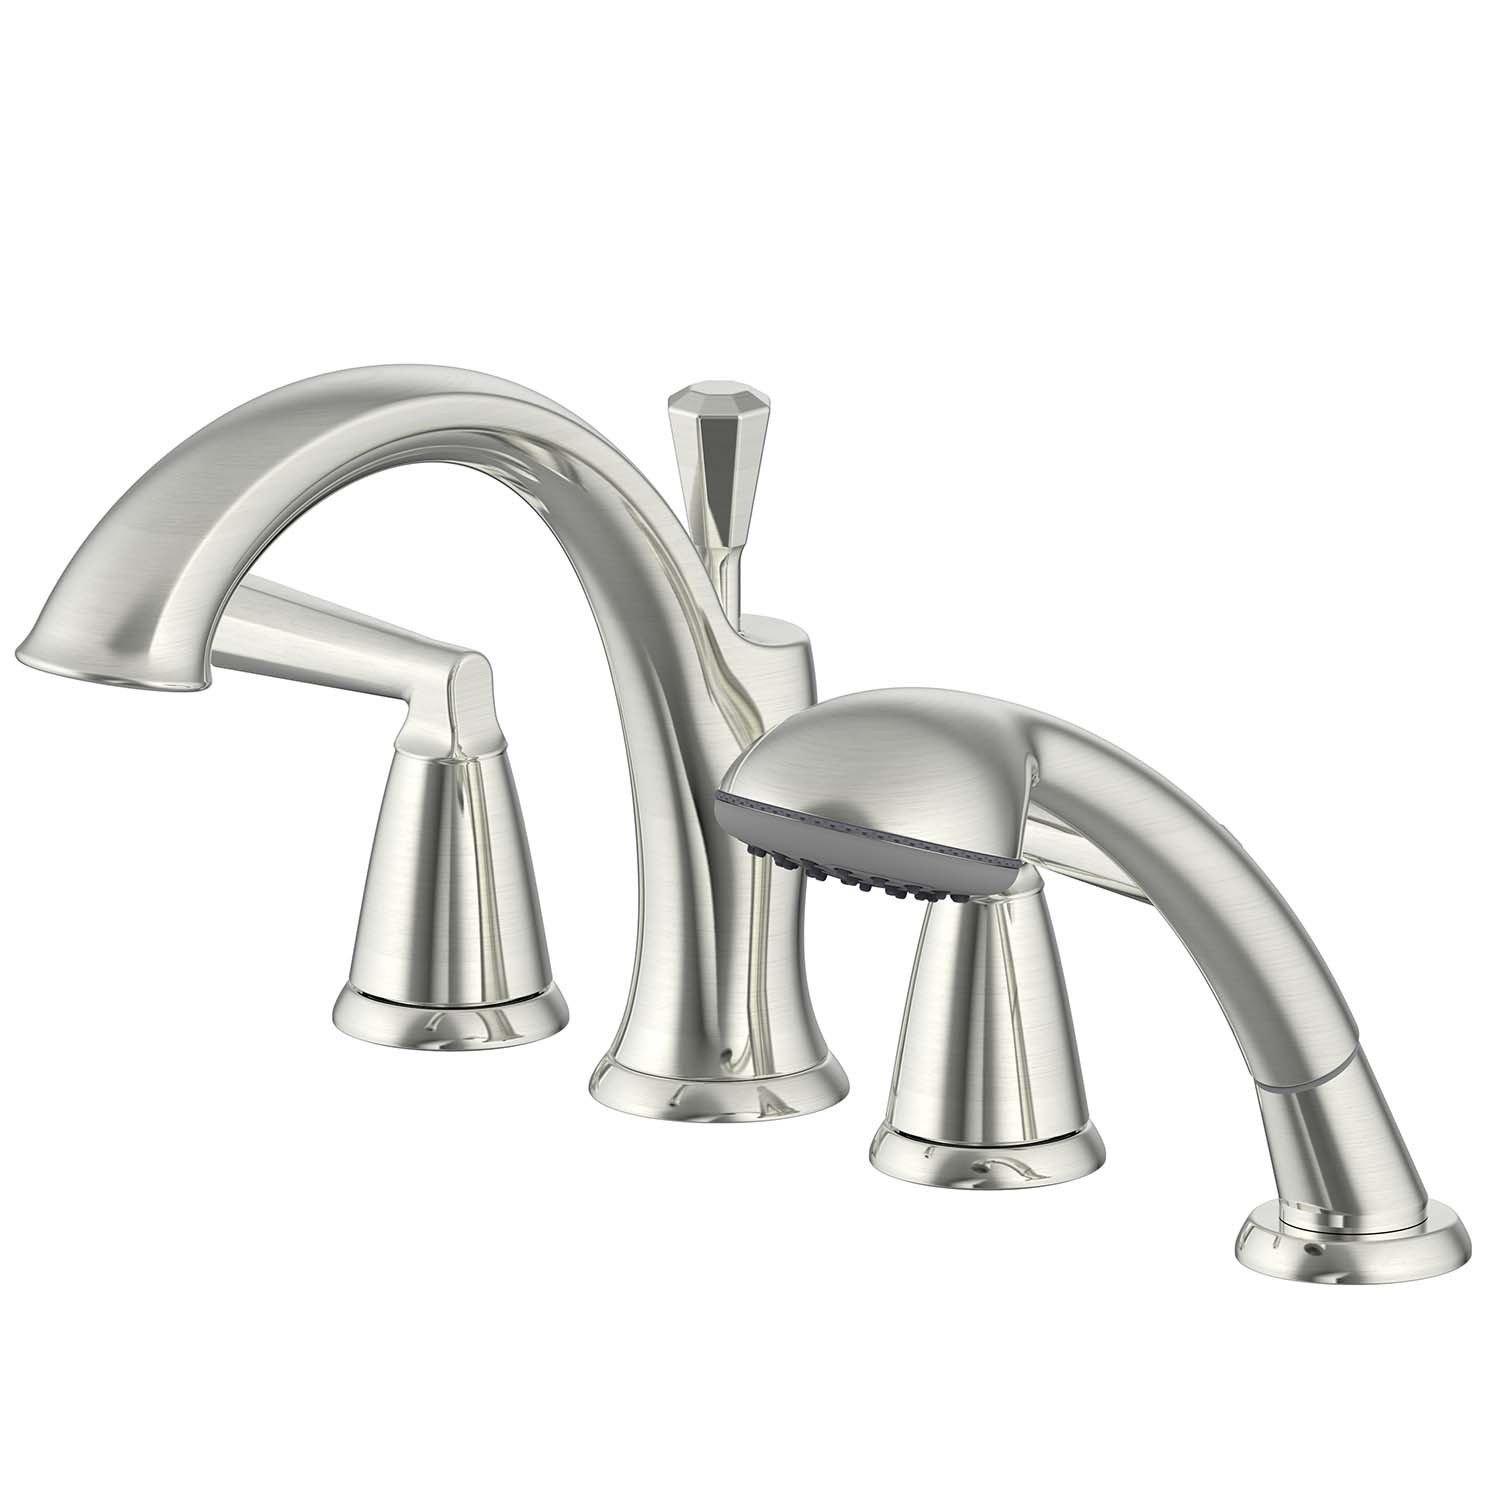 Ultra Faucets Uf65443 Z Collection Two Handle Roman Tub Faucet